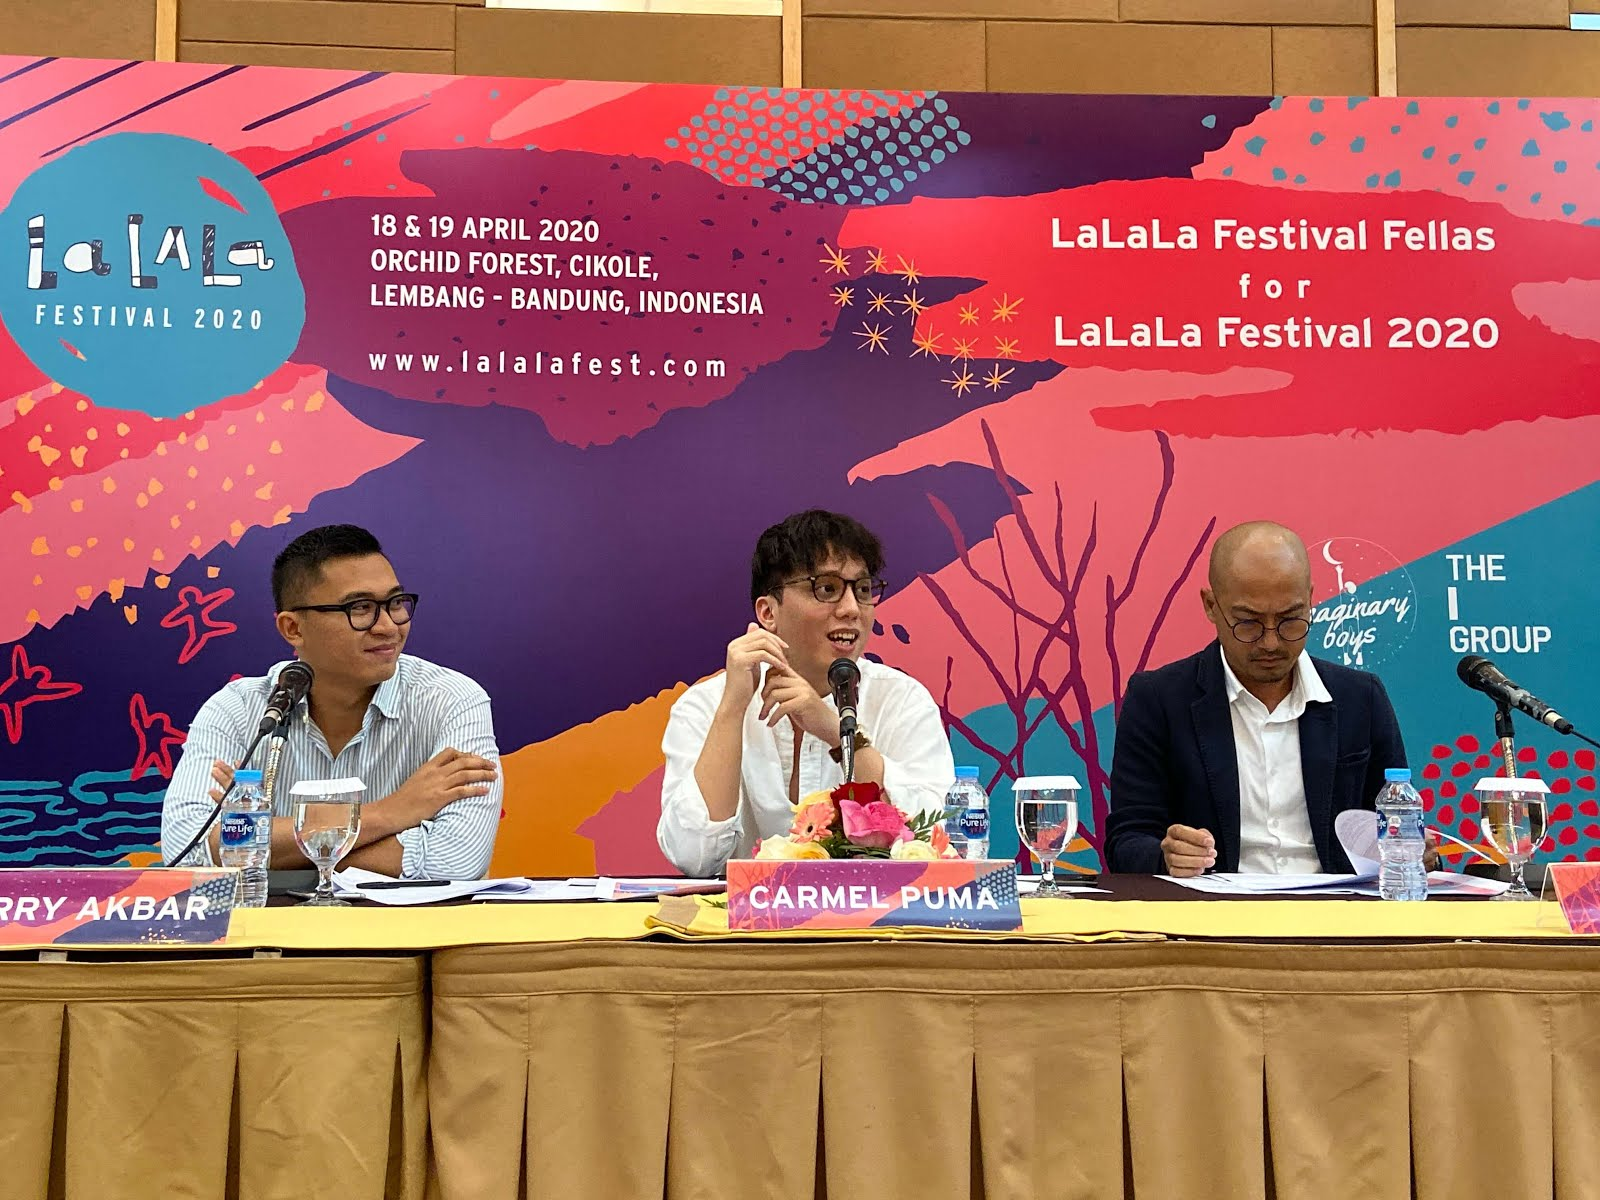 Press Conference of LaLaLa Festival 2020 - A better LaLaLa Festival made with hands of everyone